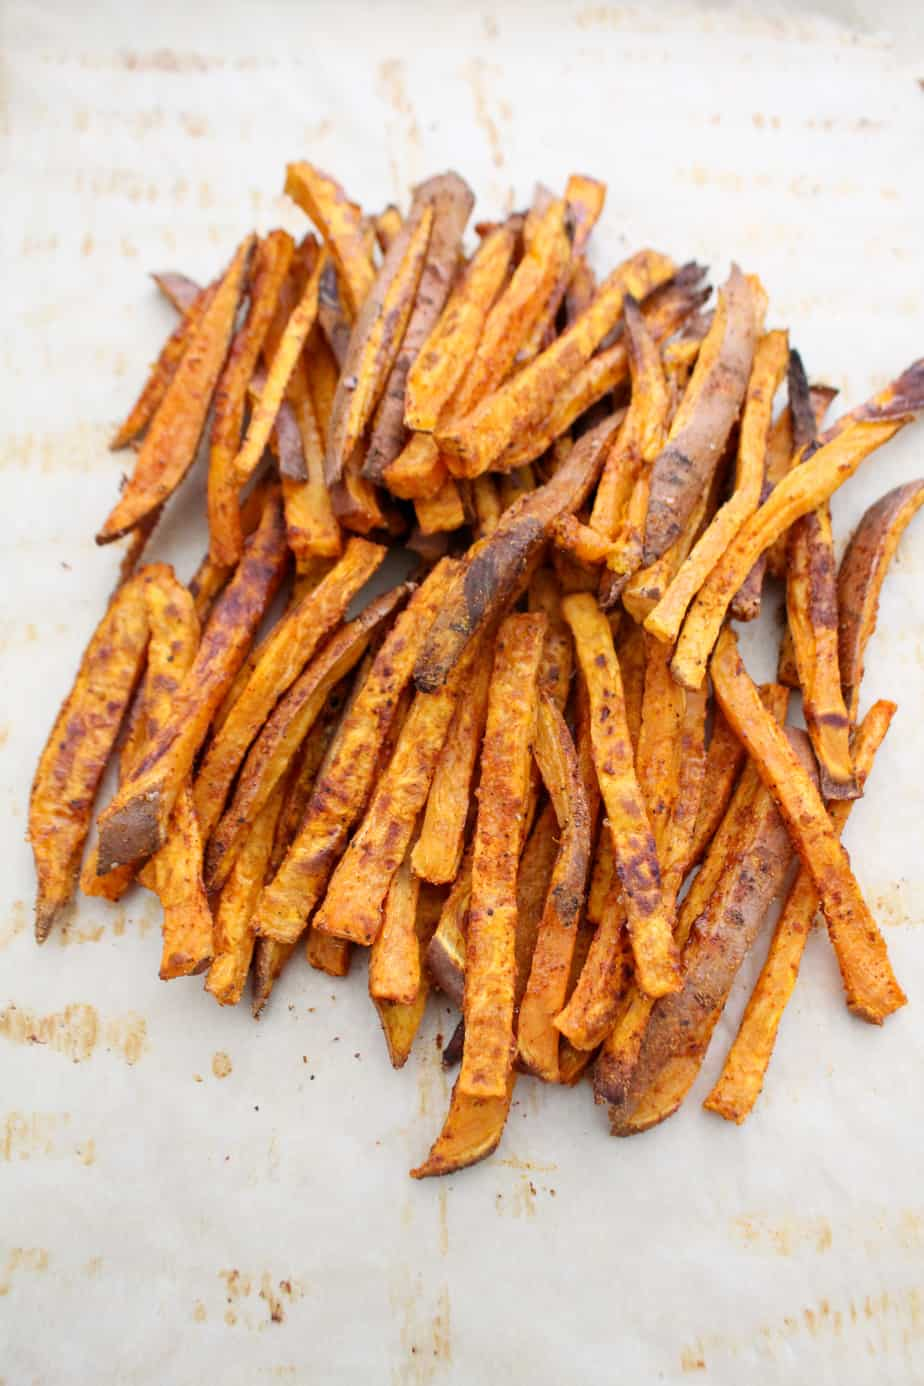 Spicy Baked Sweet Potato Fries | Frugal Nutrition